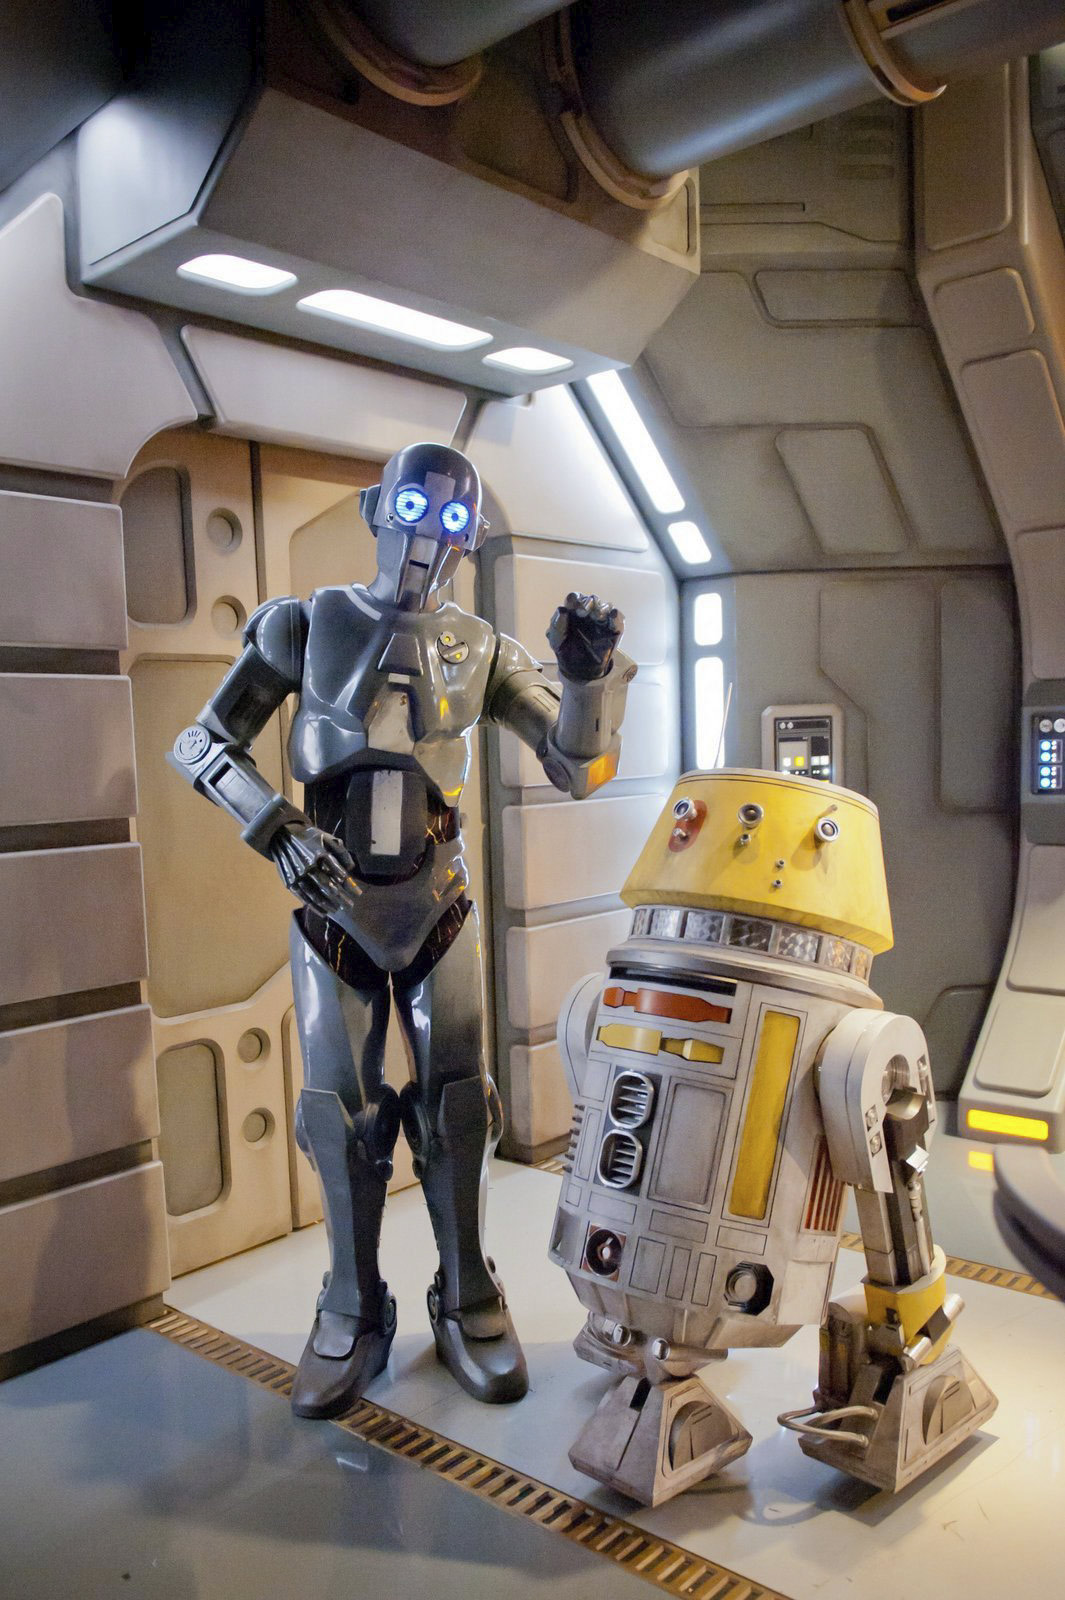 The hilarious new droid duo of AD-3 (voiced by Mary Holland) and LX-R5.